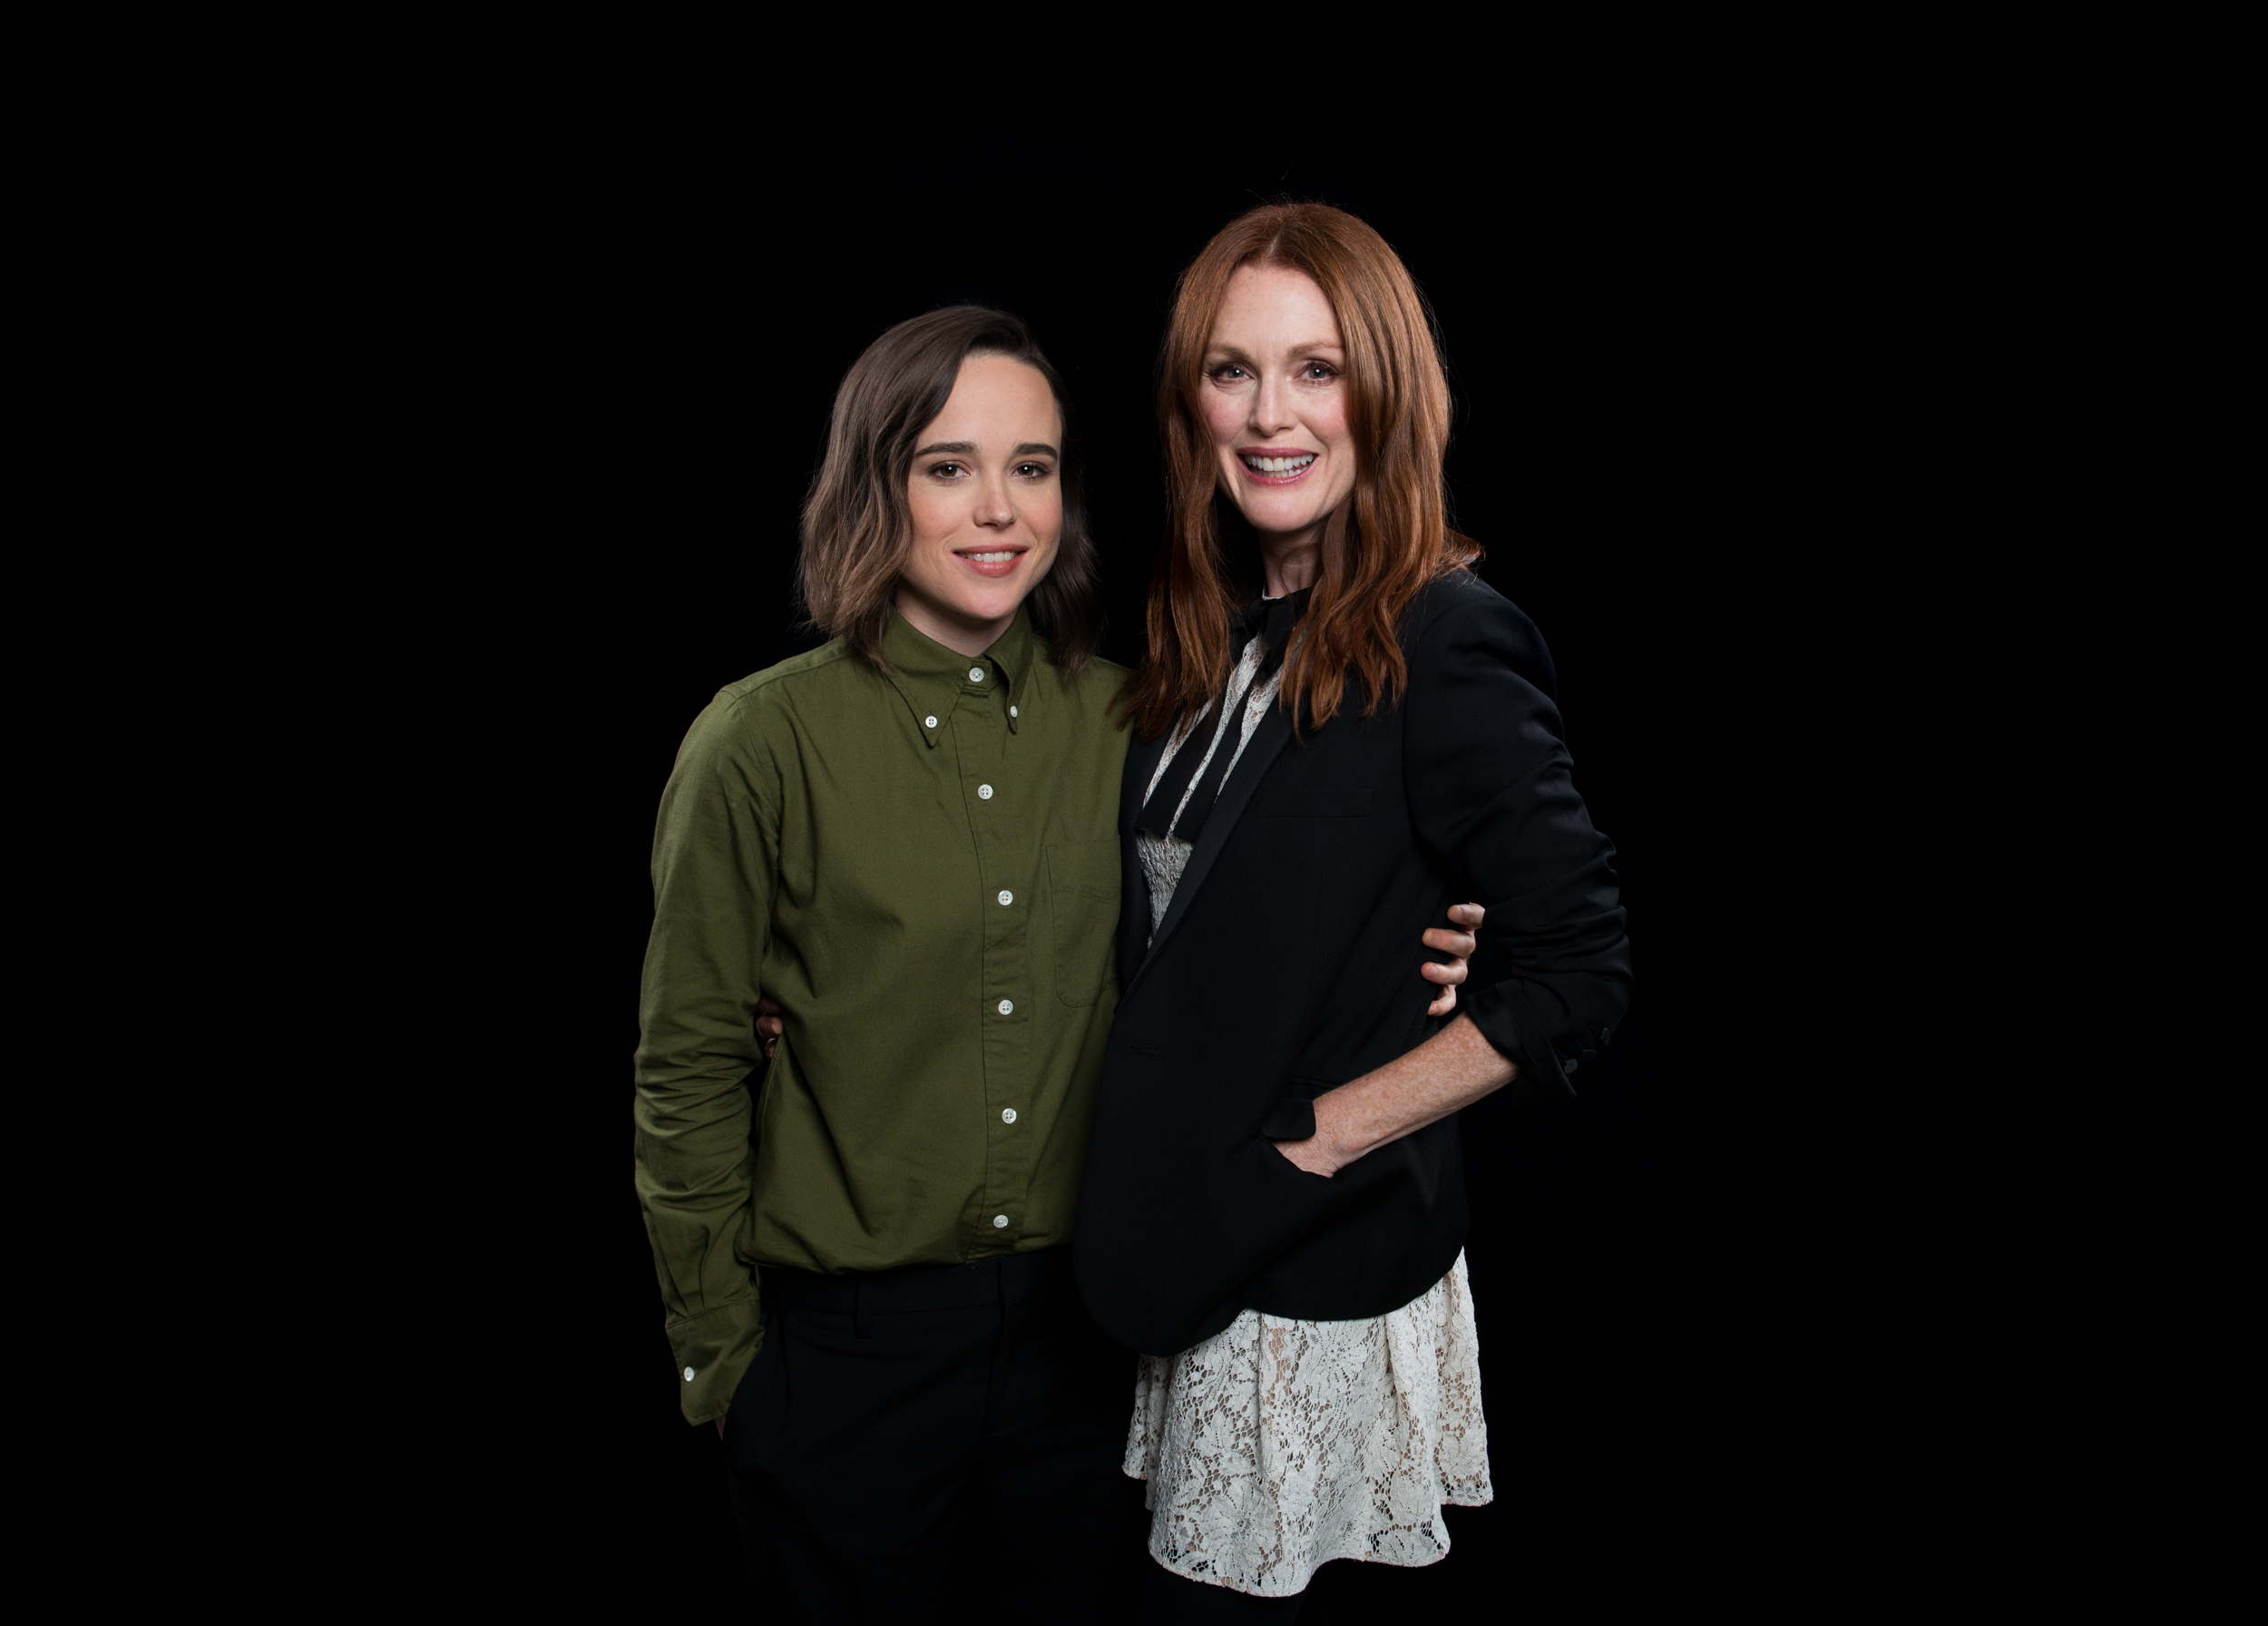 Julianne Moore, Ellen Page and Peter Sollett visit AOL Hq for Build on September 28, 2015 in New York. Photos by Noam Galai